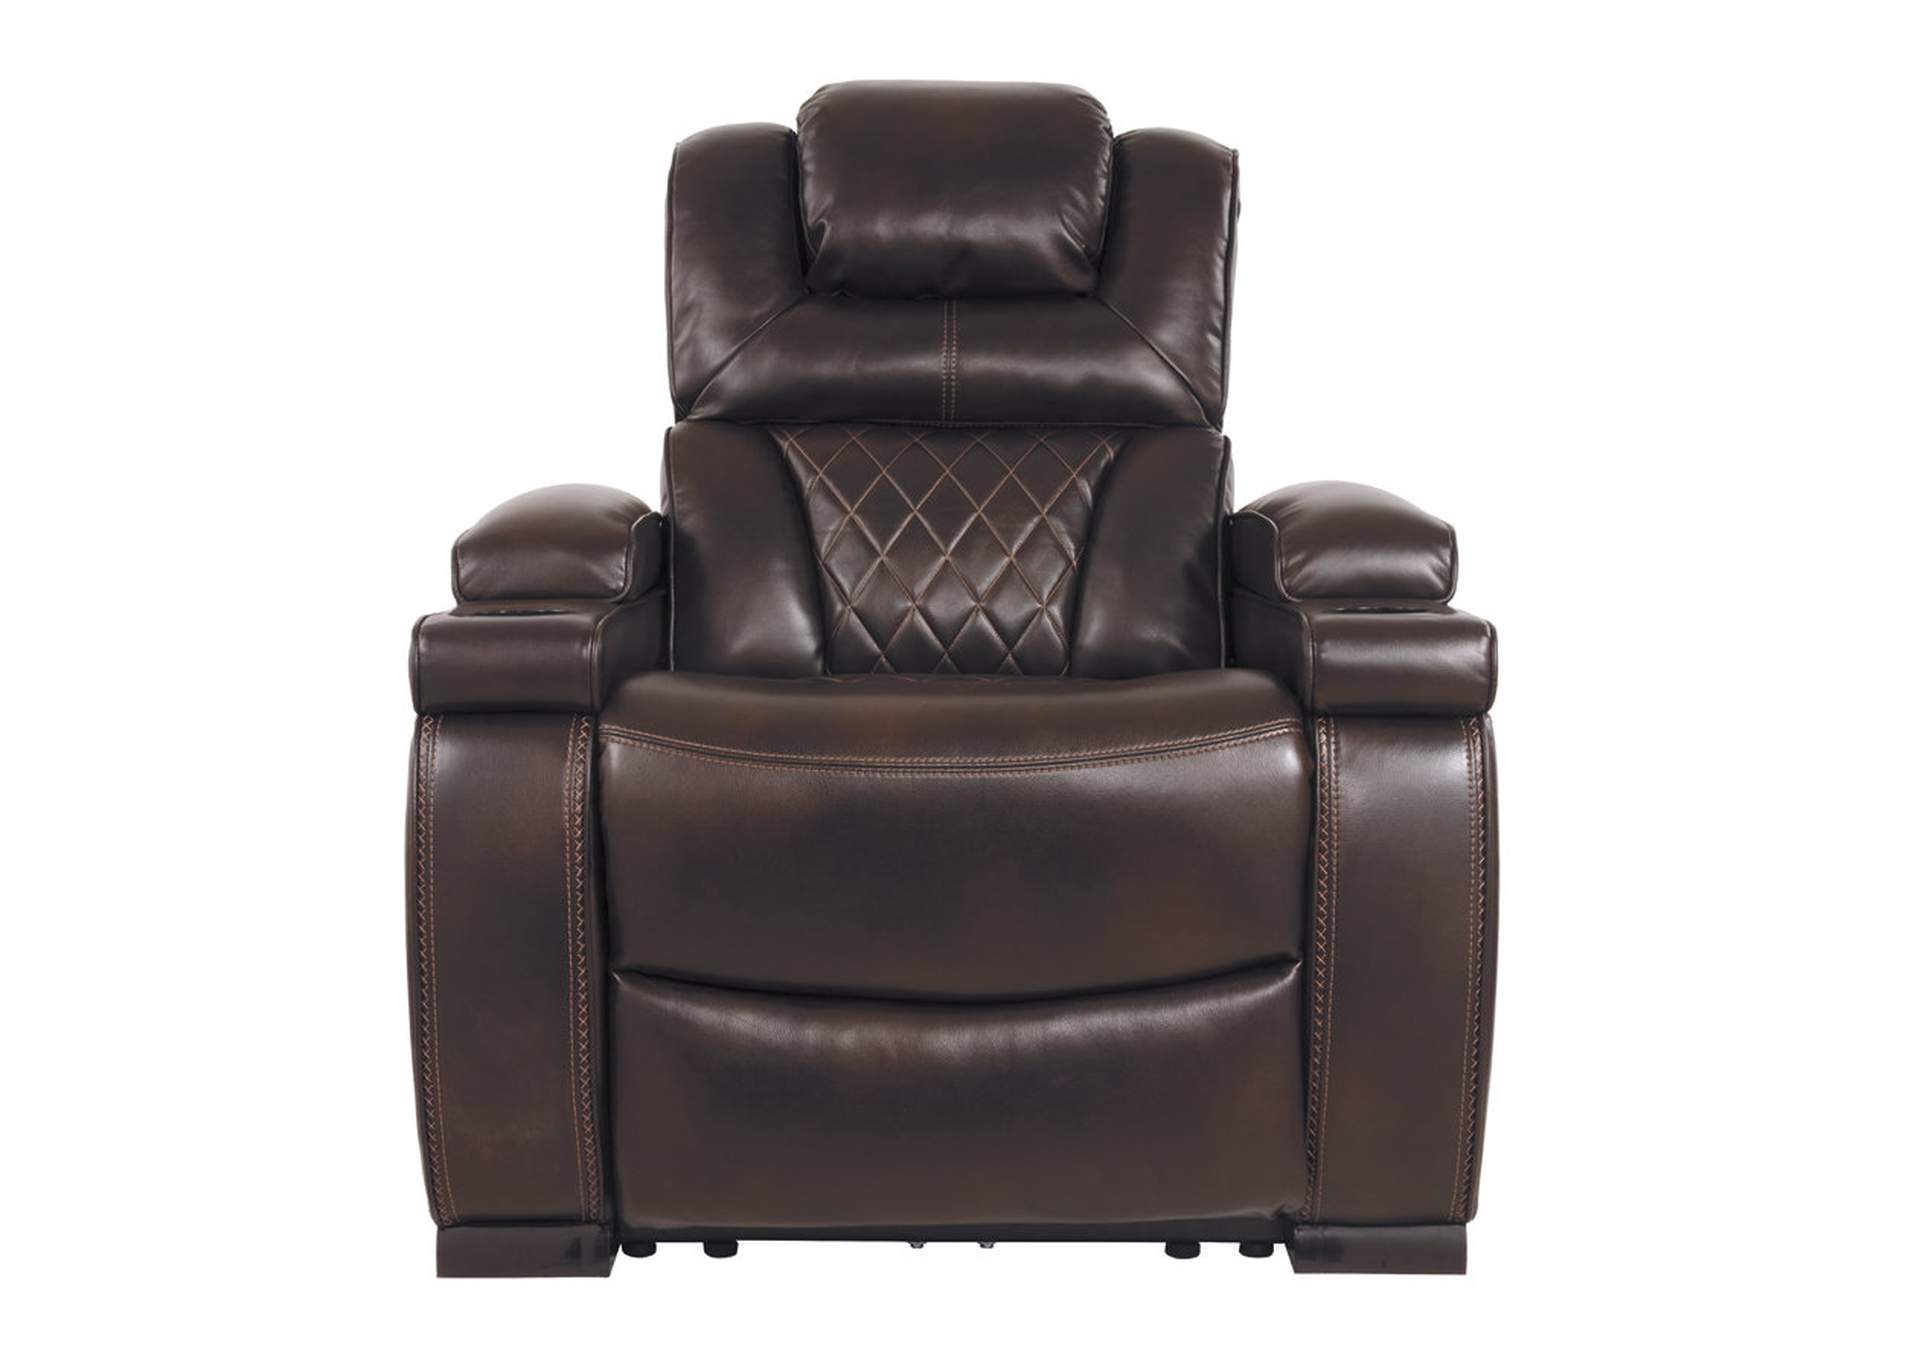 Warnerton Chocolate Power Recliner w/Adjustable Headrest,Signature Design By Ashley